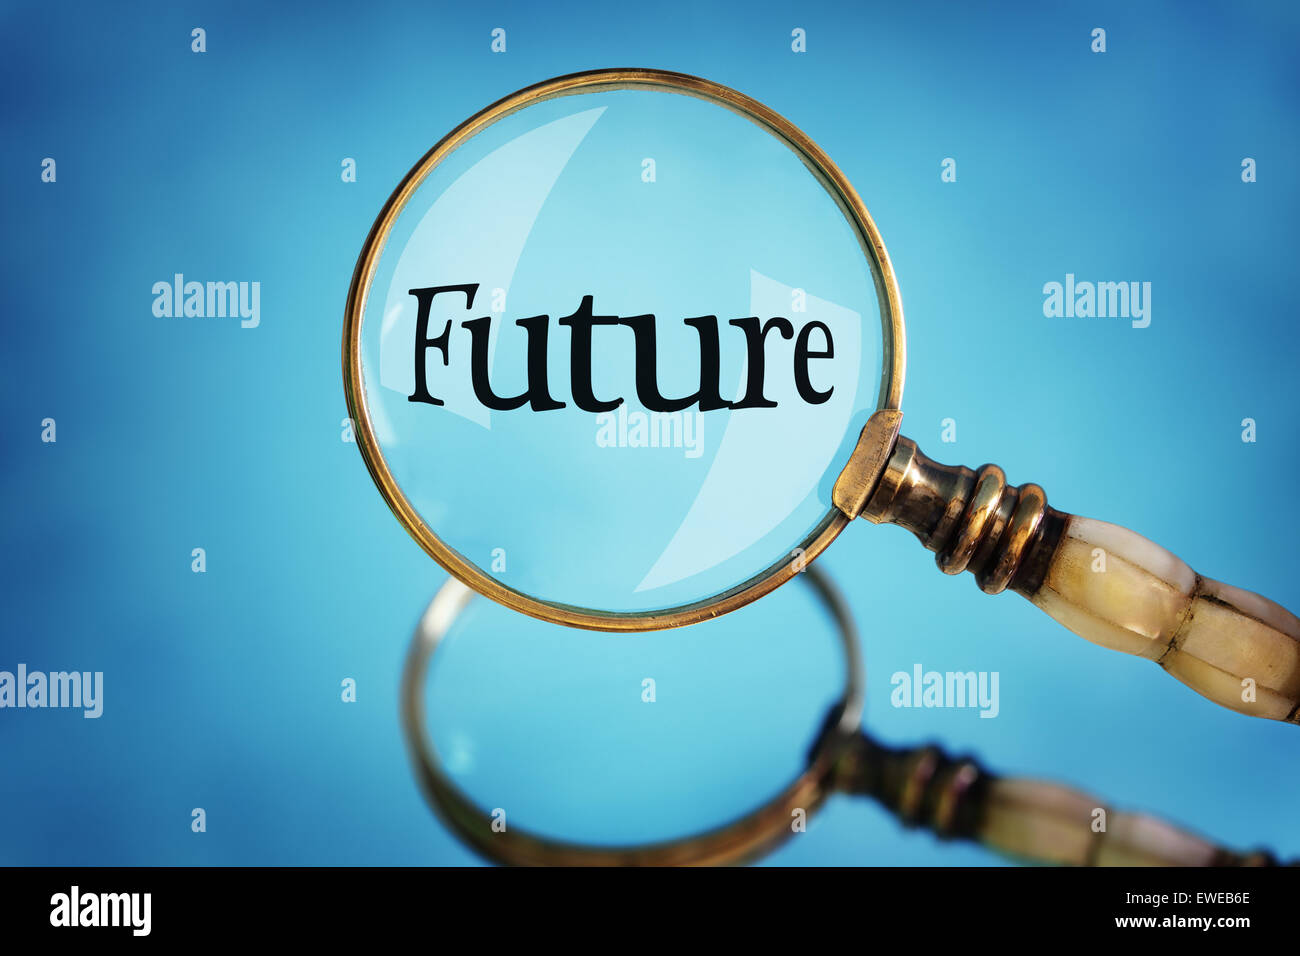 Magnifying glass focus on the word future concept for planning, vision and  looking forward - Stock Image